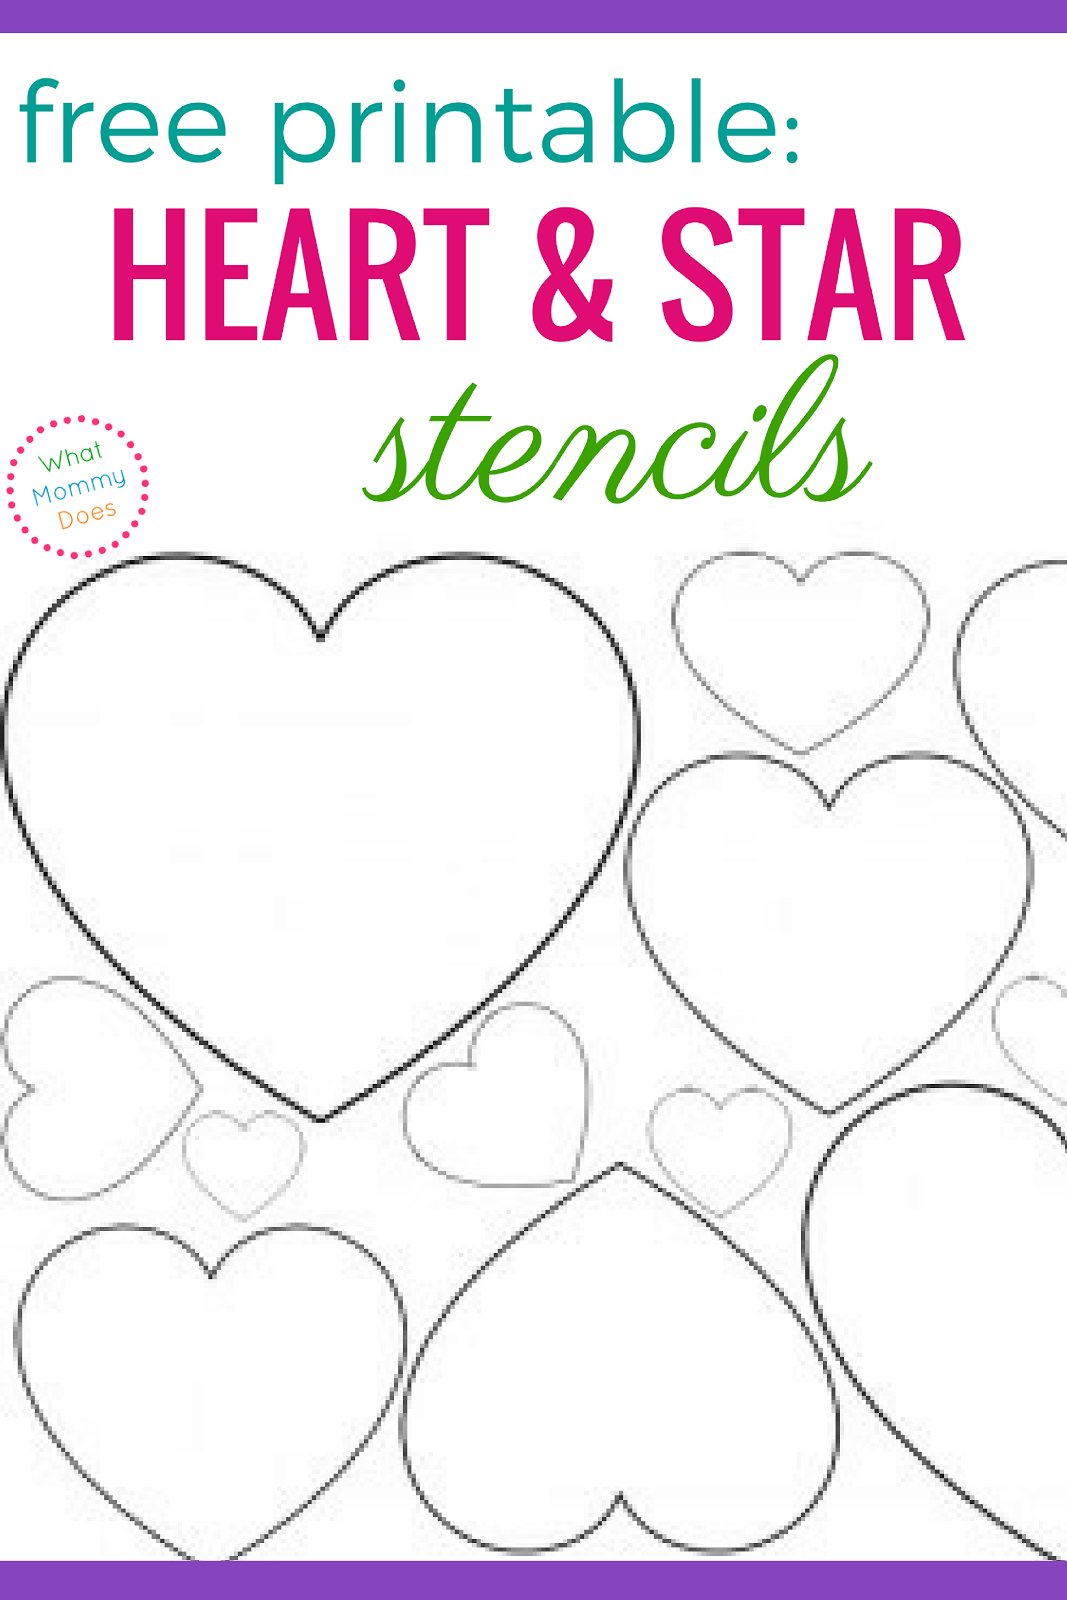 printable heart stencils star templates what mommy does these printable heart stencils and star templates for all of your diy projects